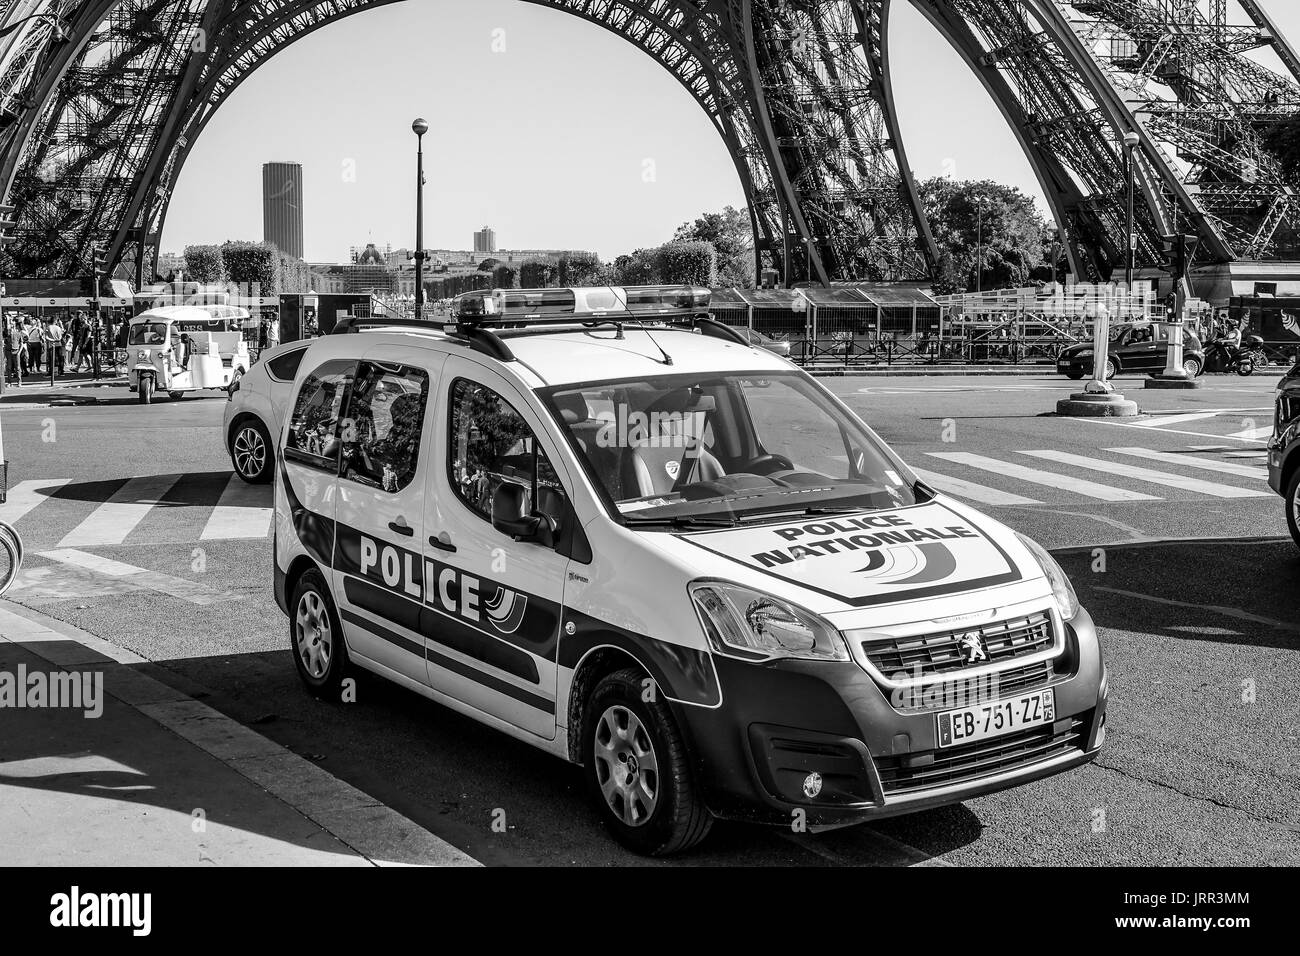 paris police traffic photos paris police traffic images alamy. Black Bedroom Furniture Sets. Home Design Ideas